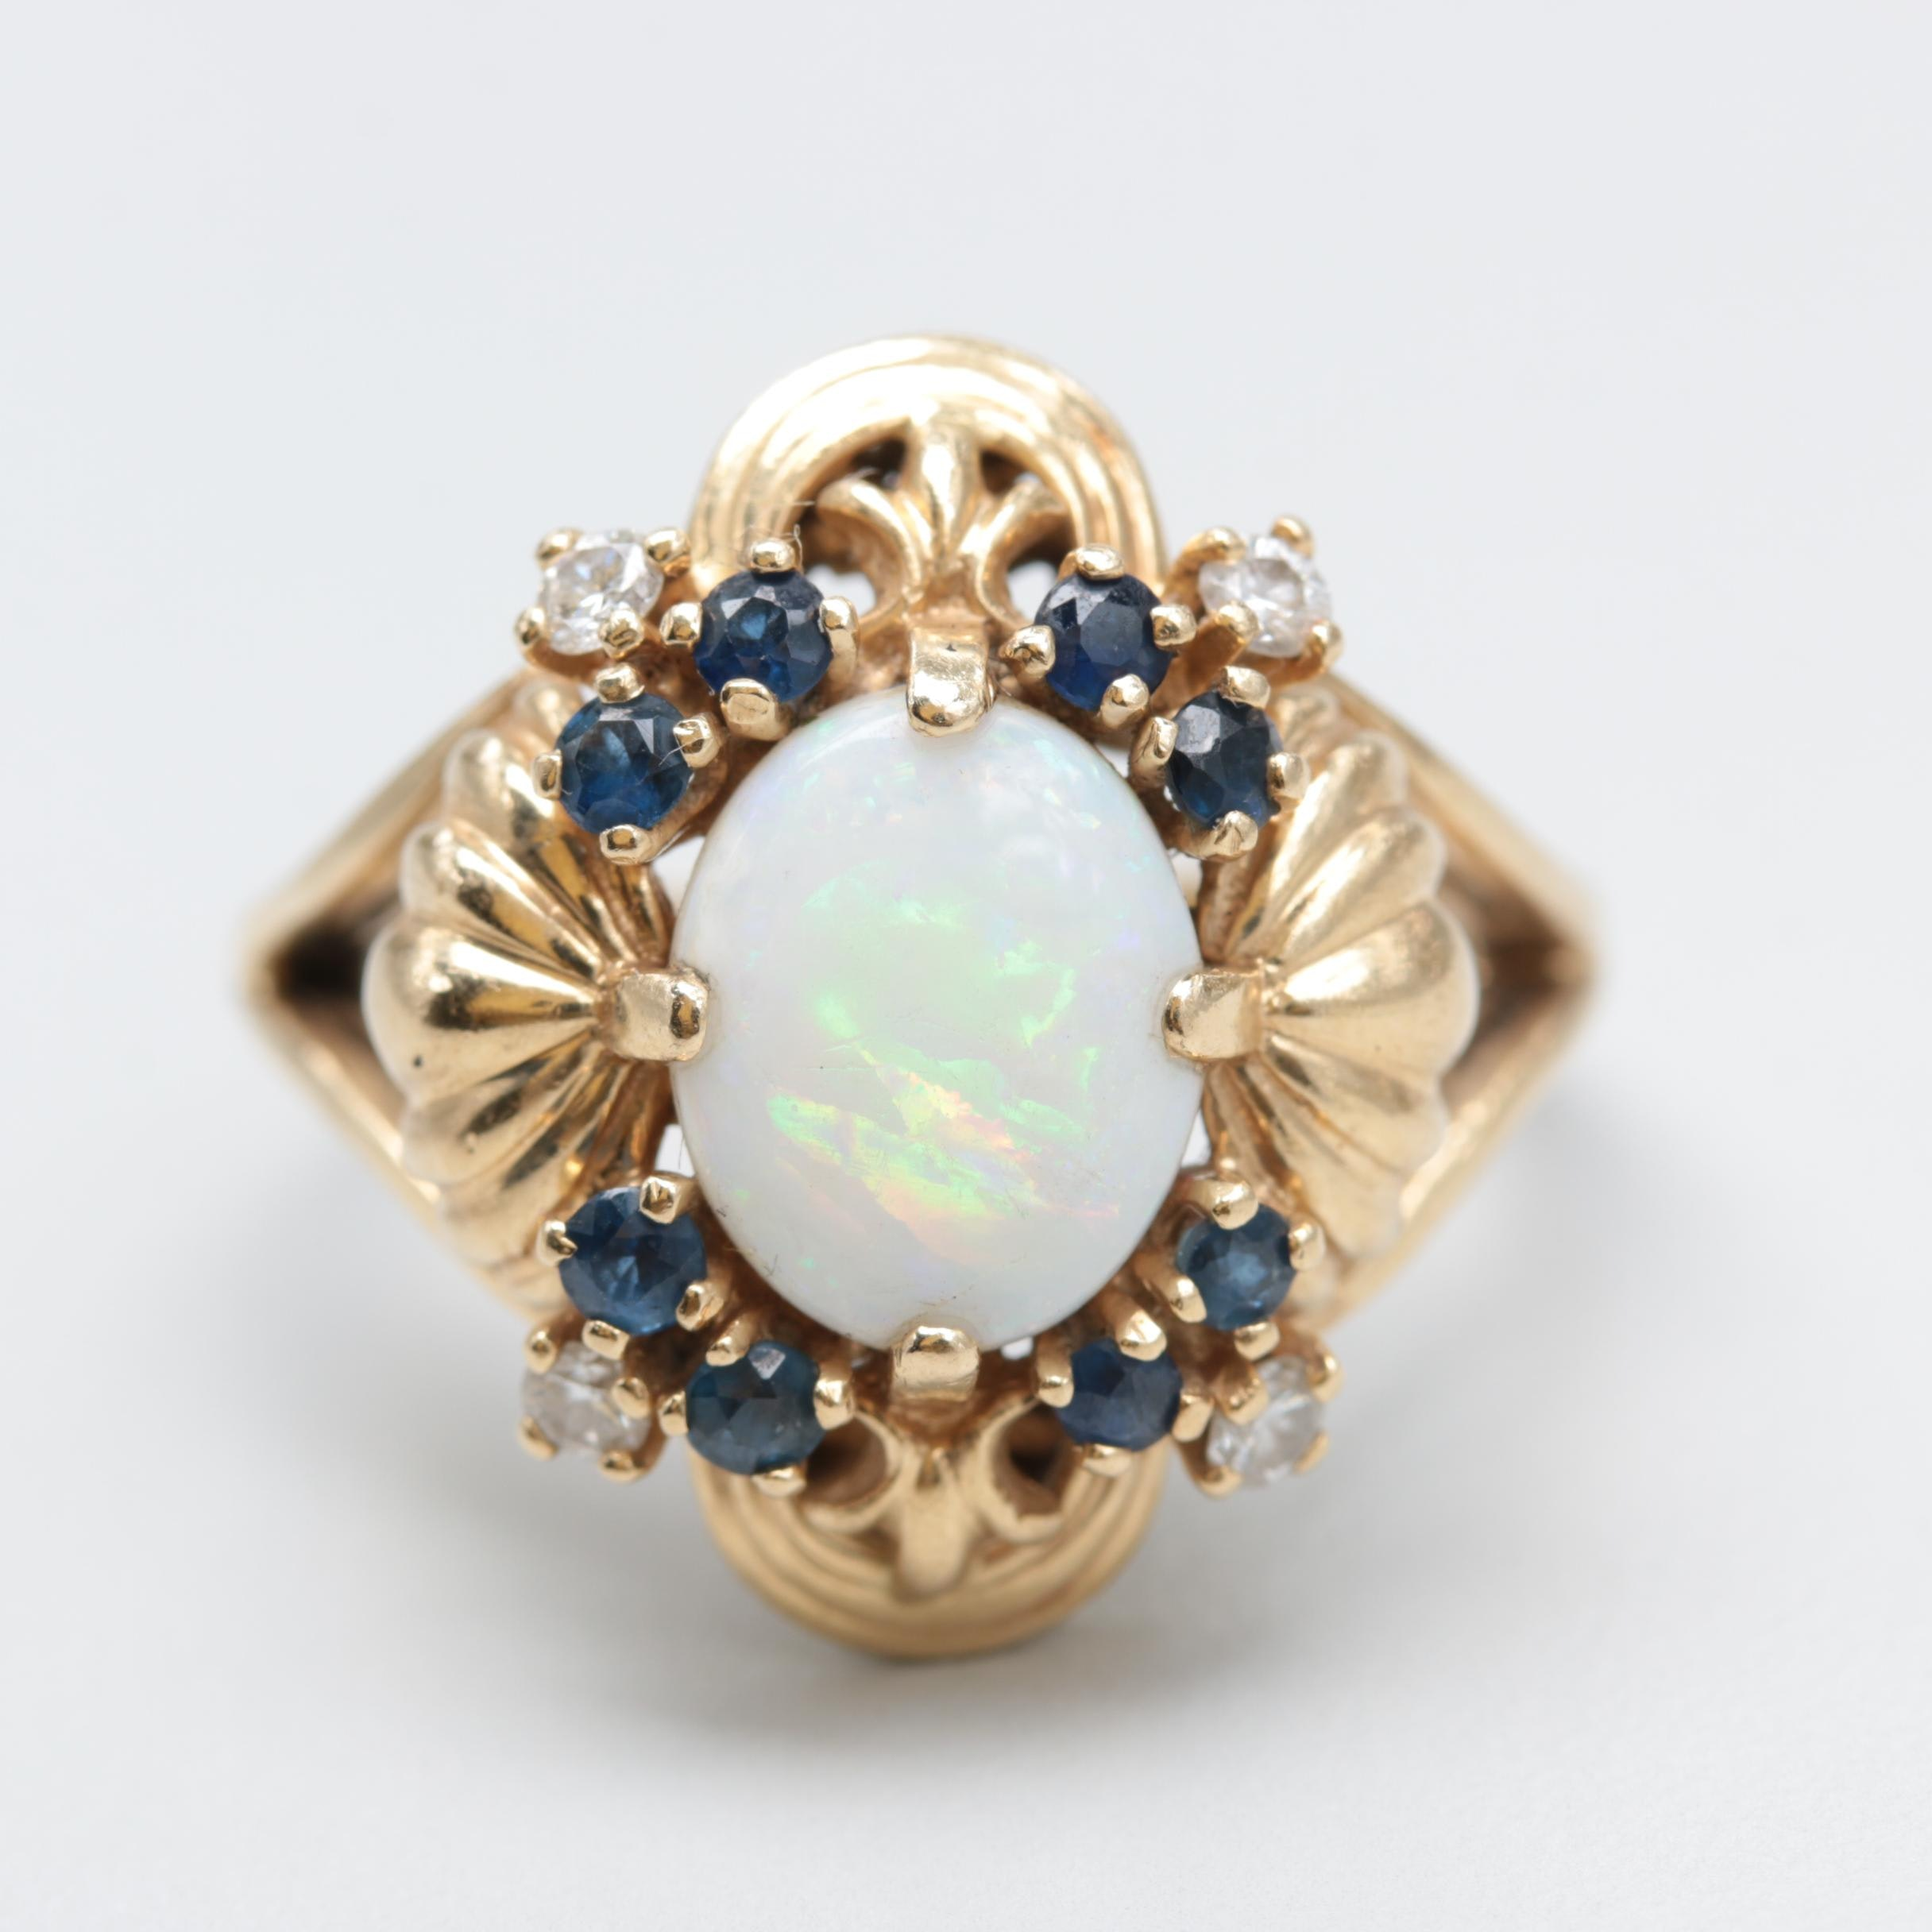 Franklin Mint 14K Yellow Gold Opal, Blue Sapphire and Diamond Ring